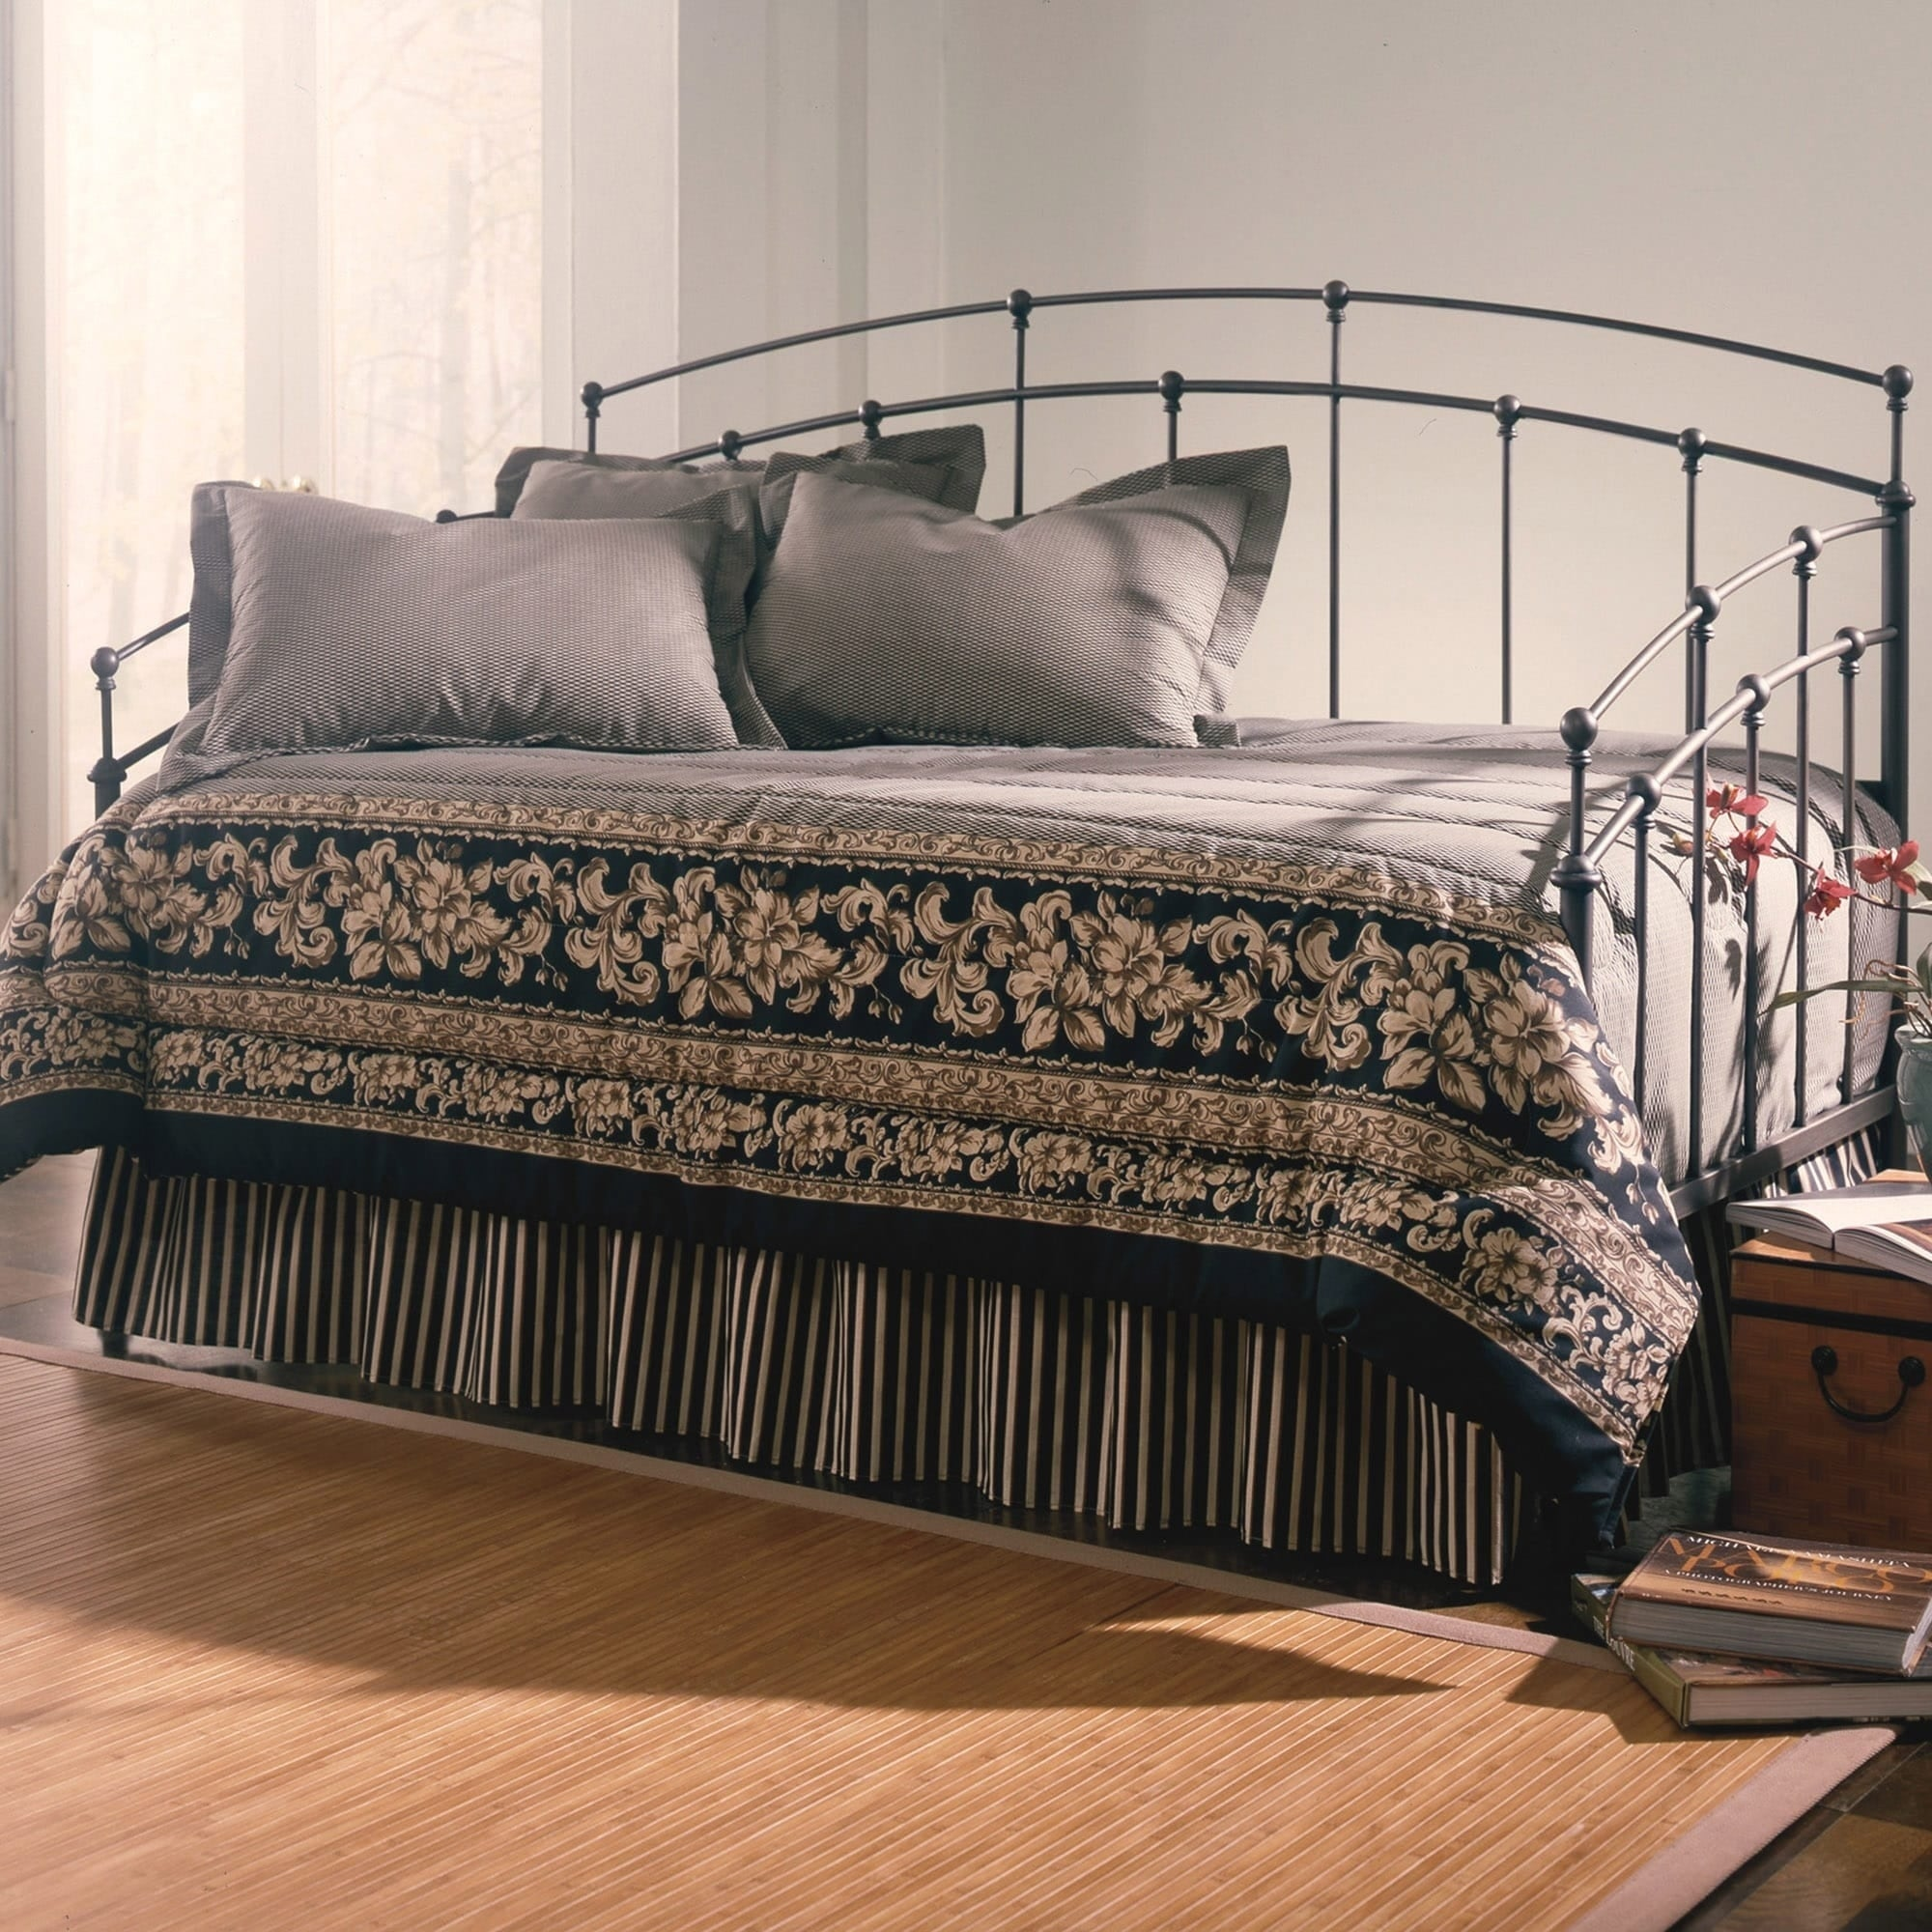 Fashion Bed Group Fenton Black Walnut Finish Complete Met...